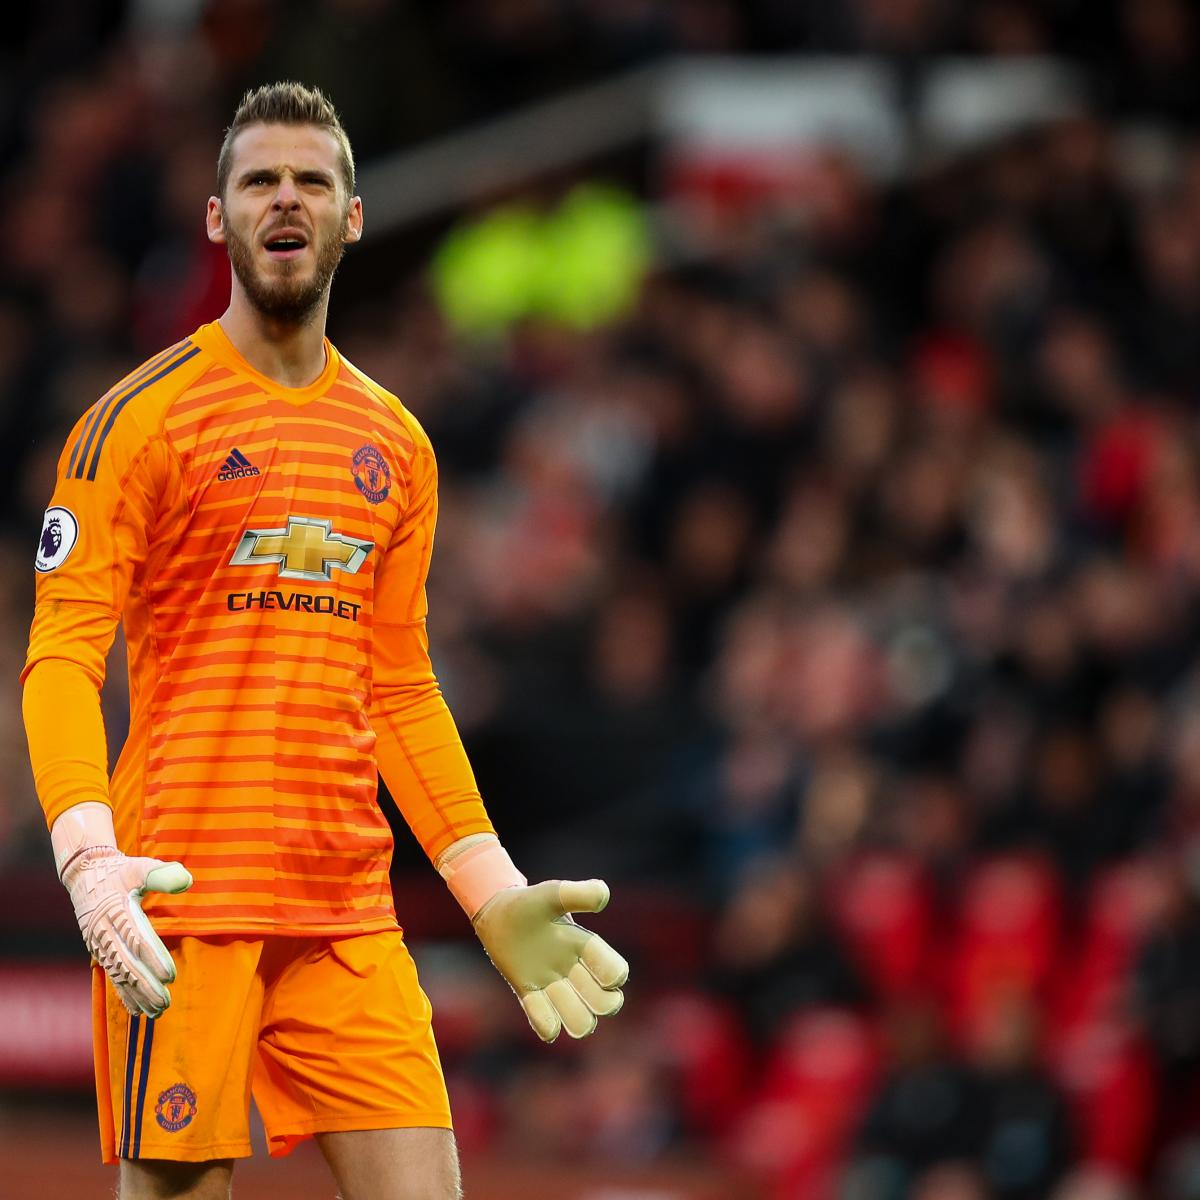 David De Gea Reportedly Given Manchester United Contract Deadline, Exit Rumours